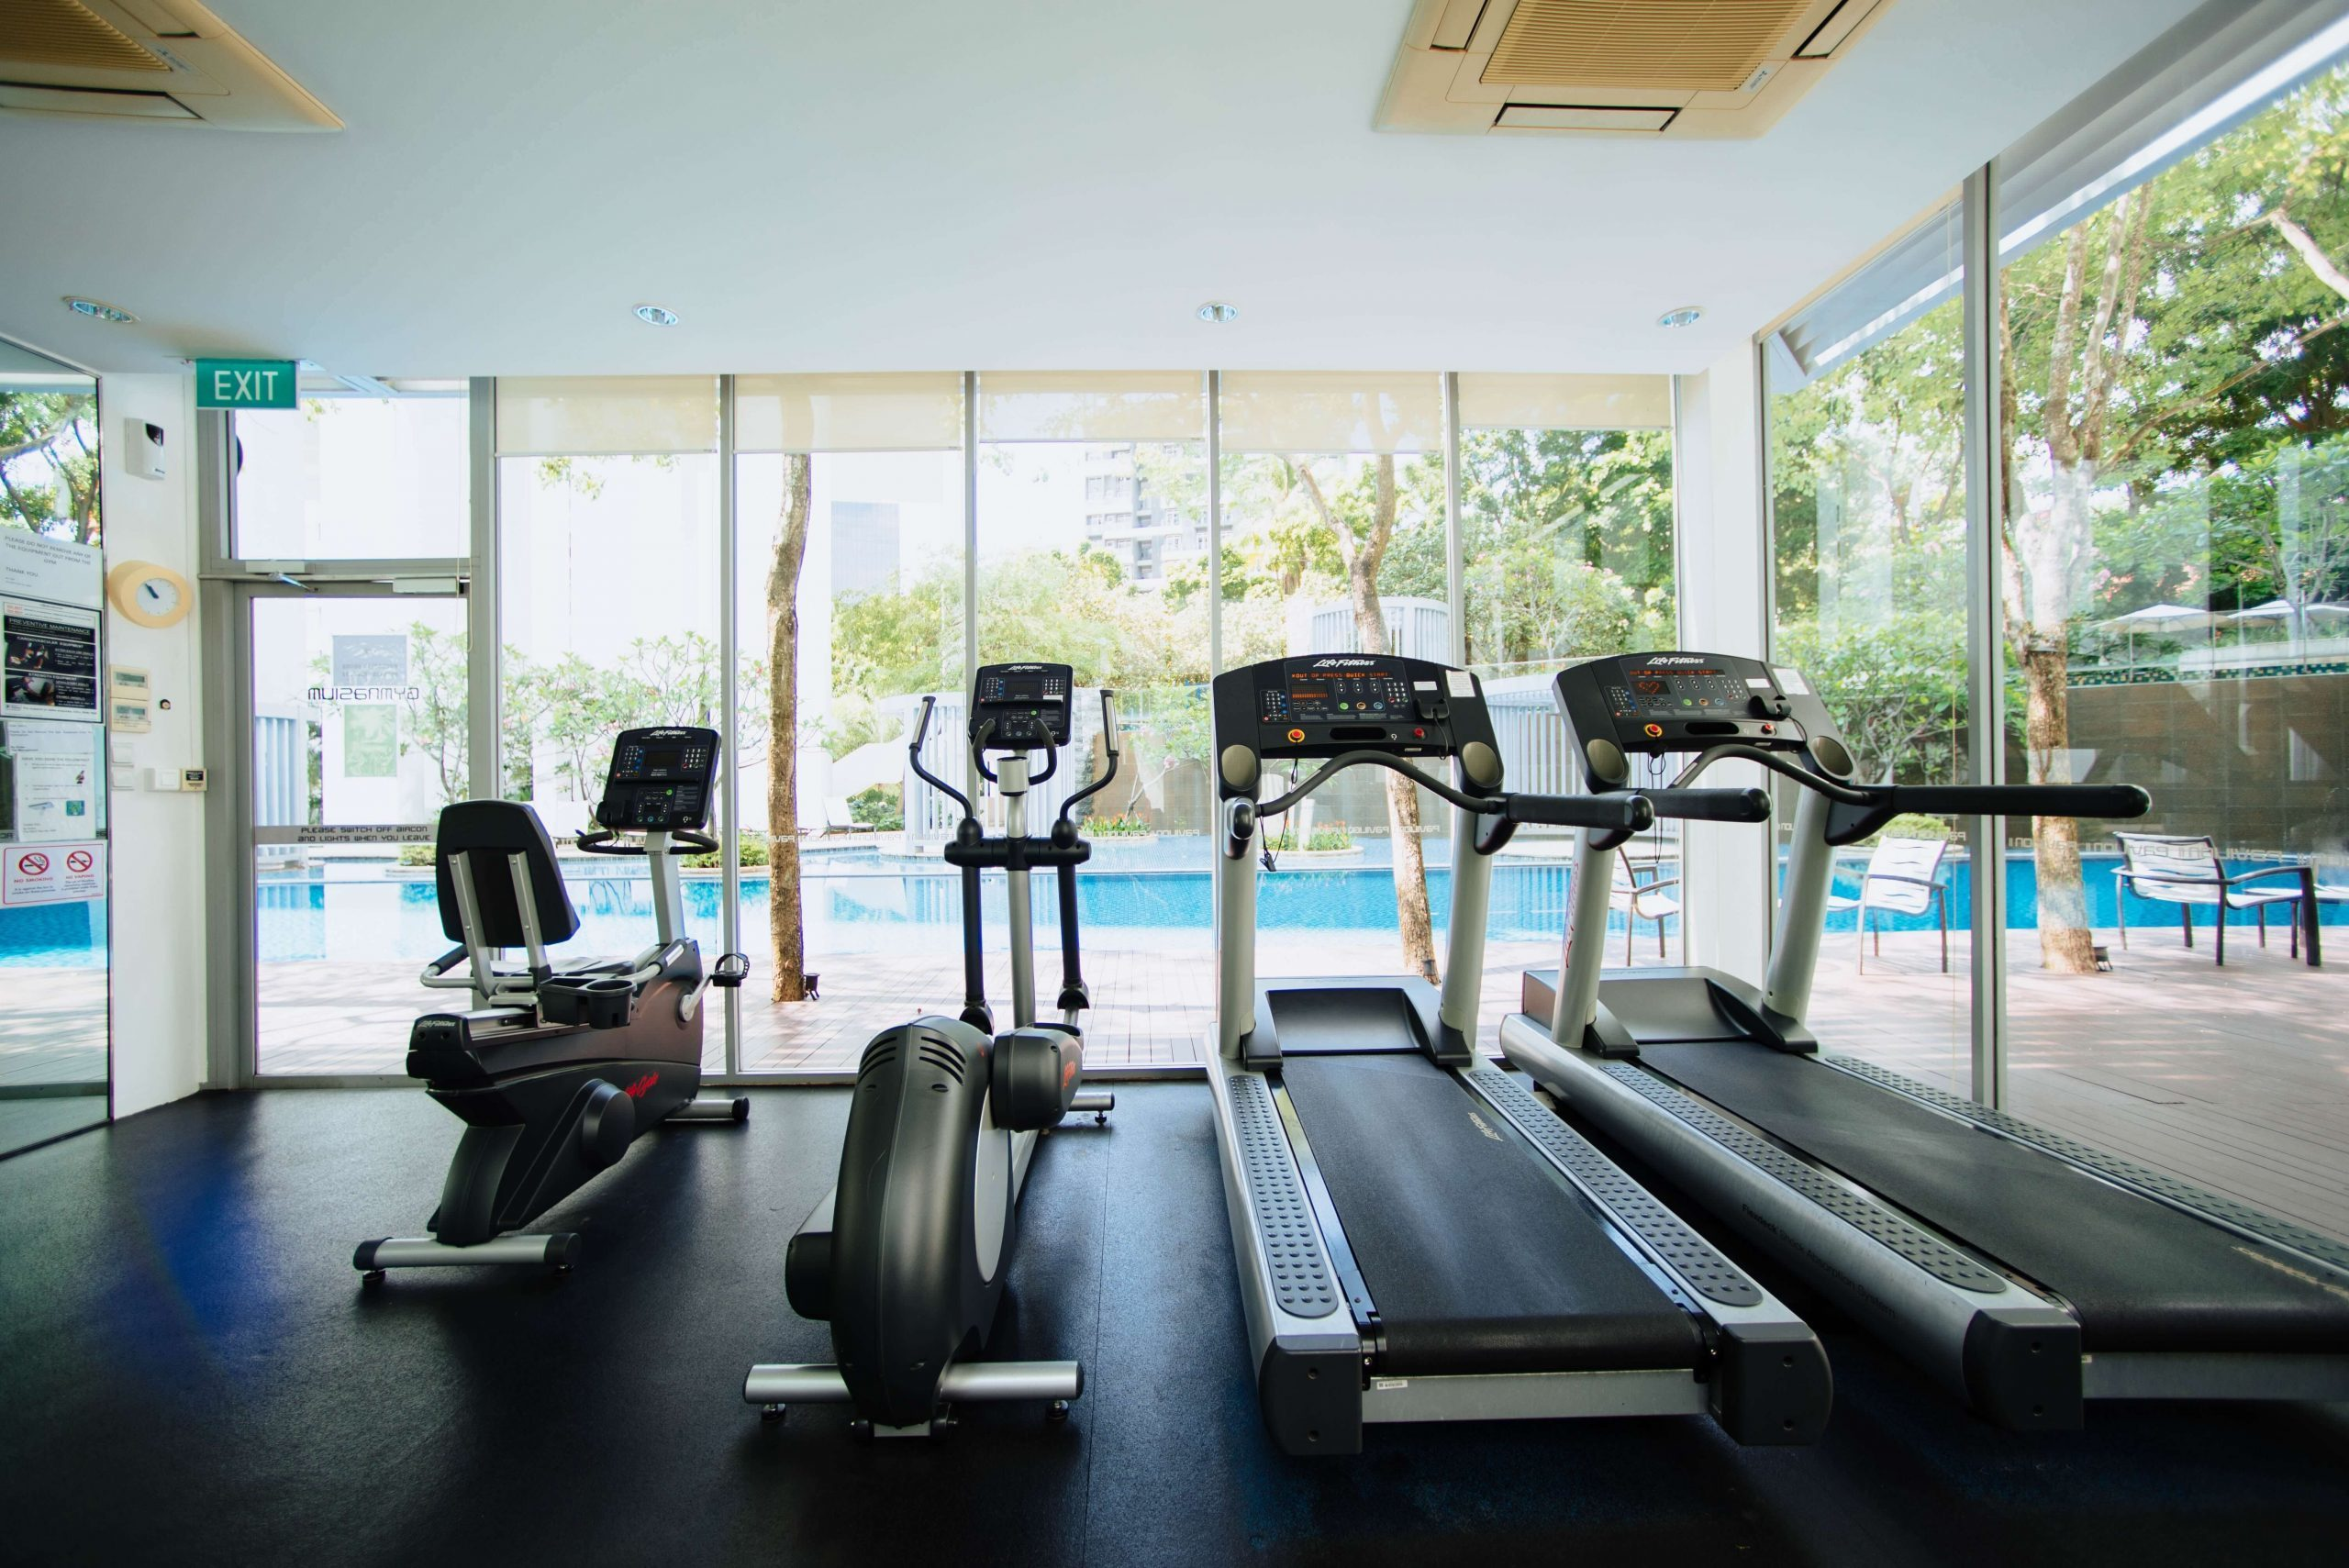 A gym with treadmills